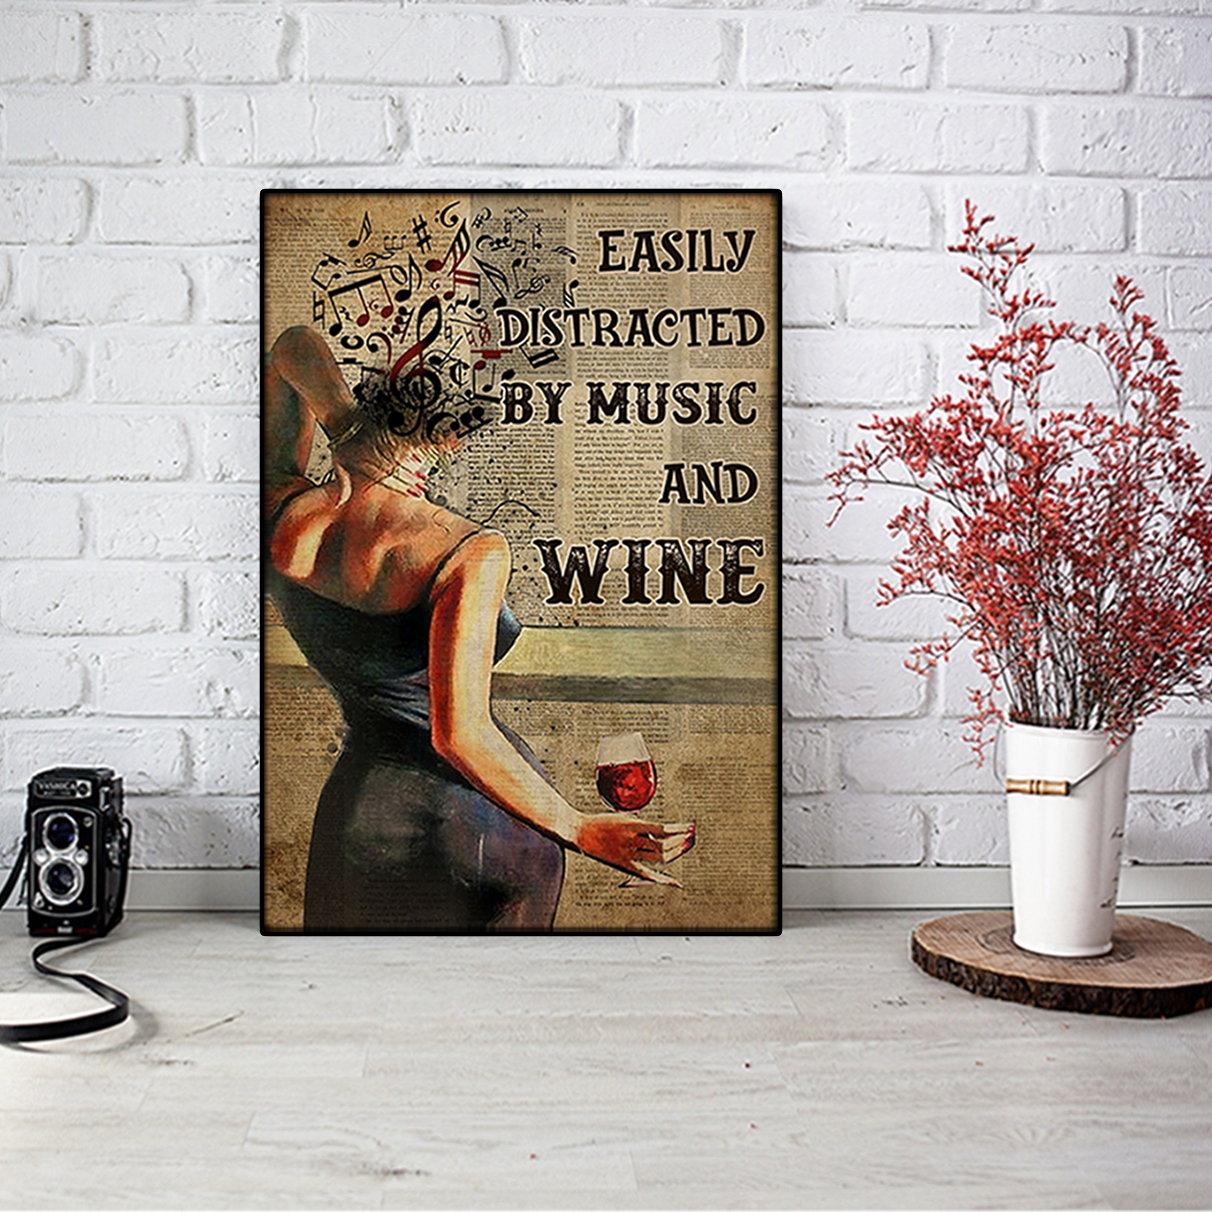 Poster Easily distracted by music and wine book